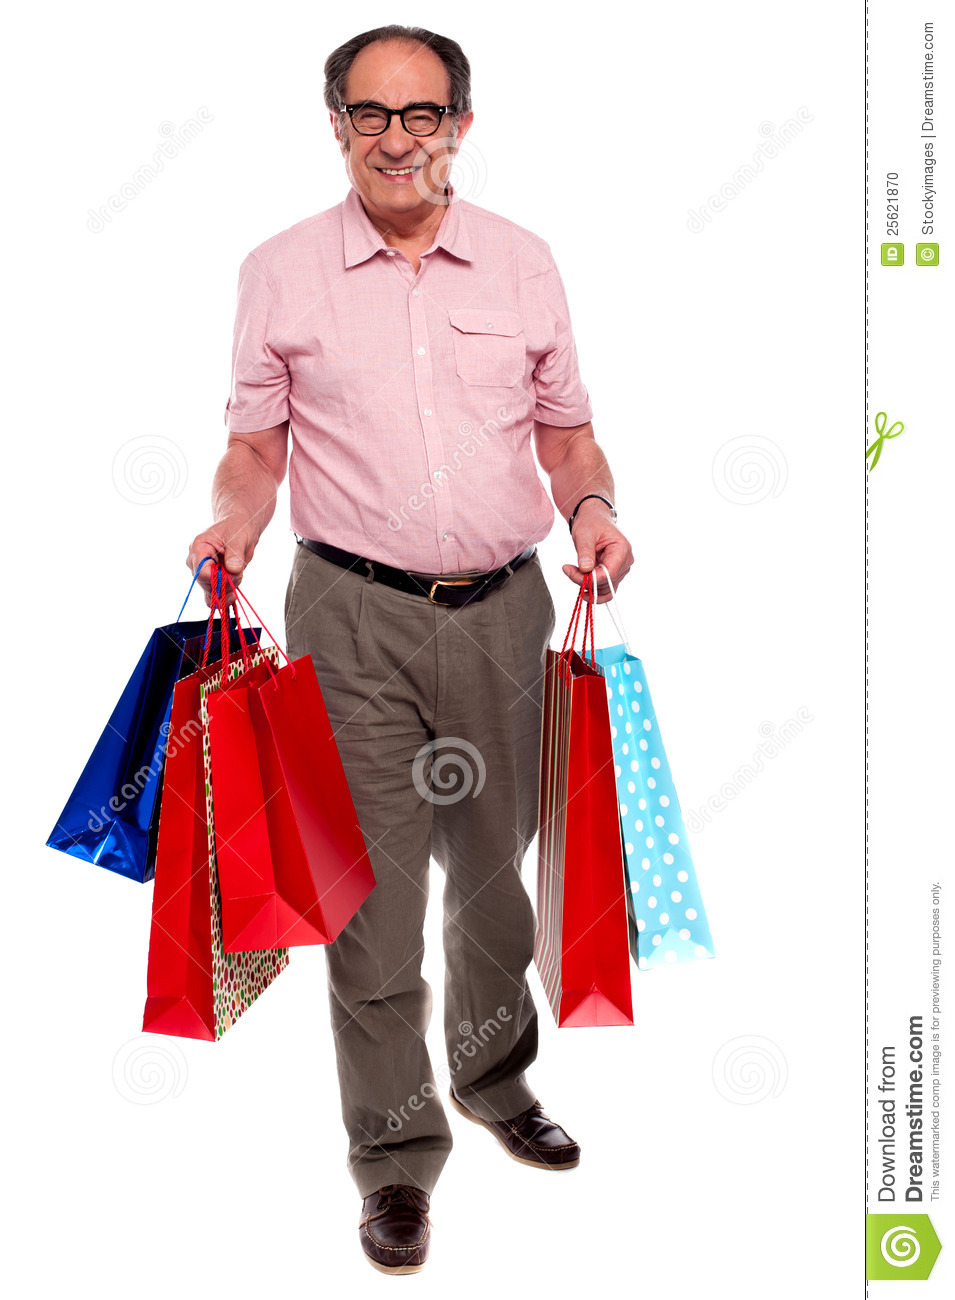 Happy Matured Man Carrying Shopping Bags Stock Photo - Image: 25621870